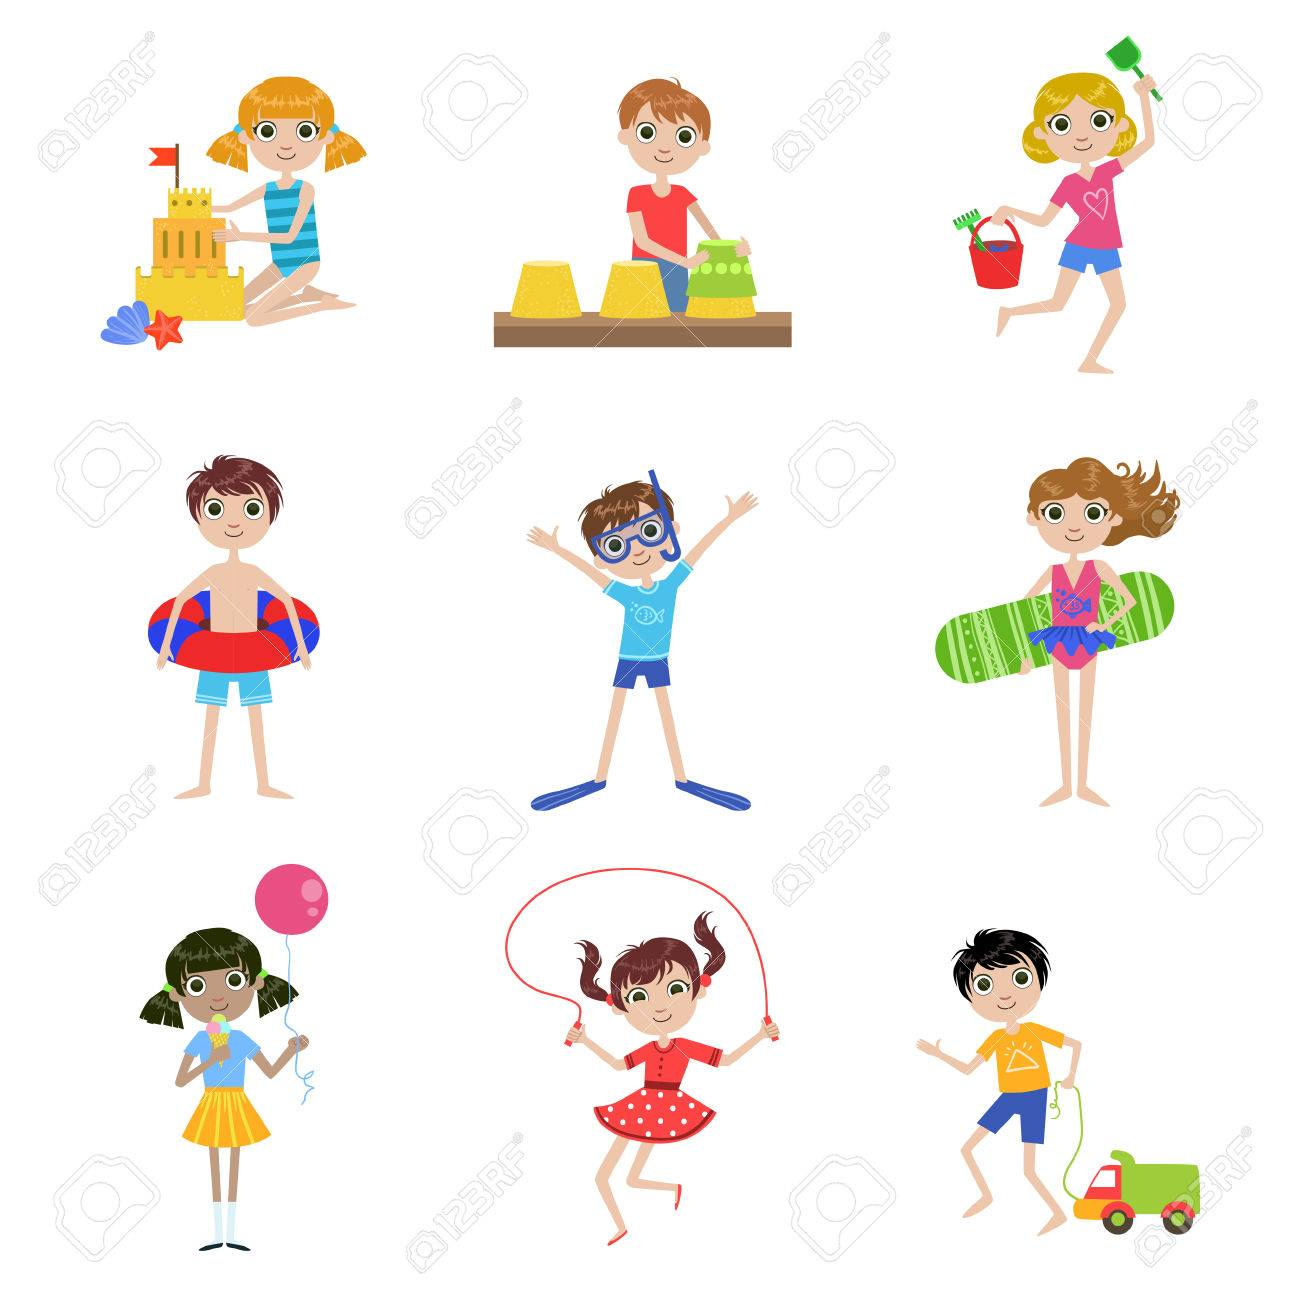 Kids On Summer Vacation Cartoon Cute Flat Vector Funny Images Set Isolated White Background Stock